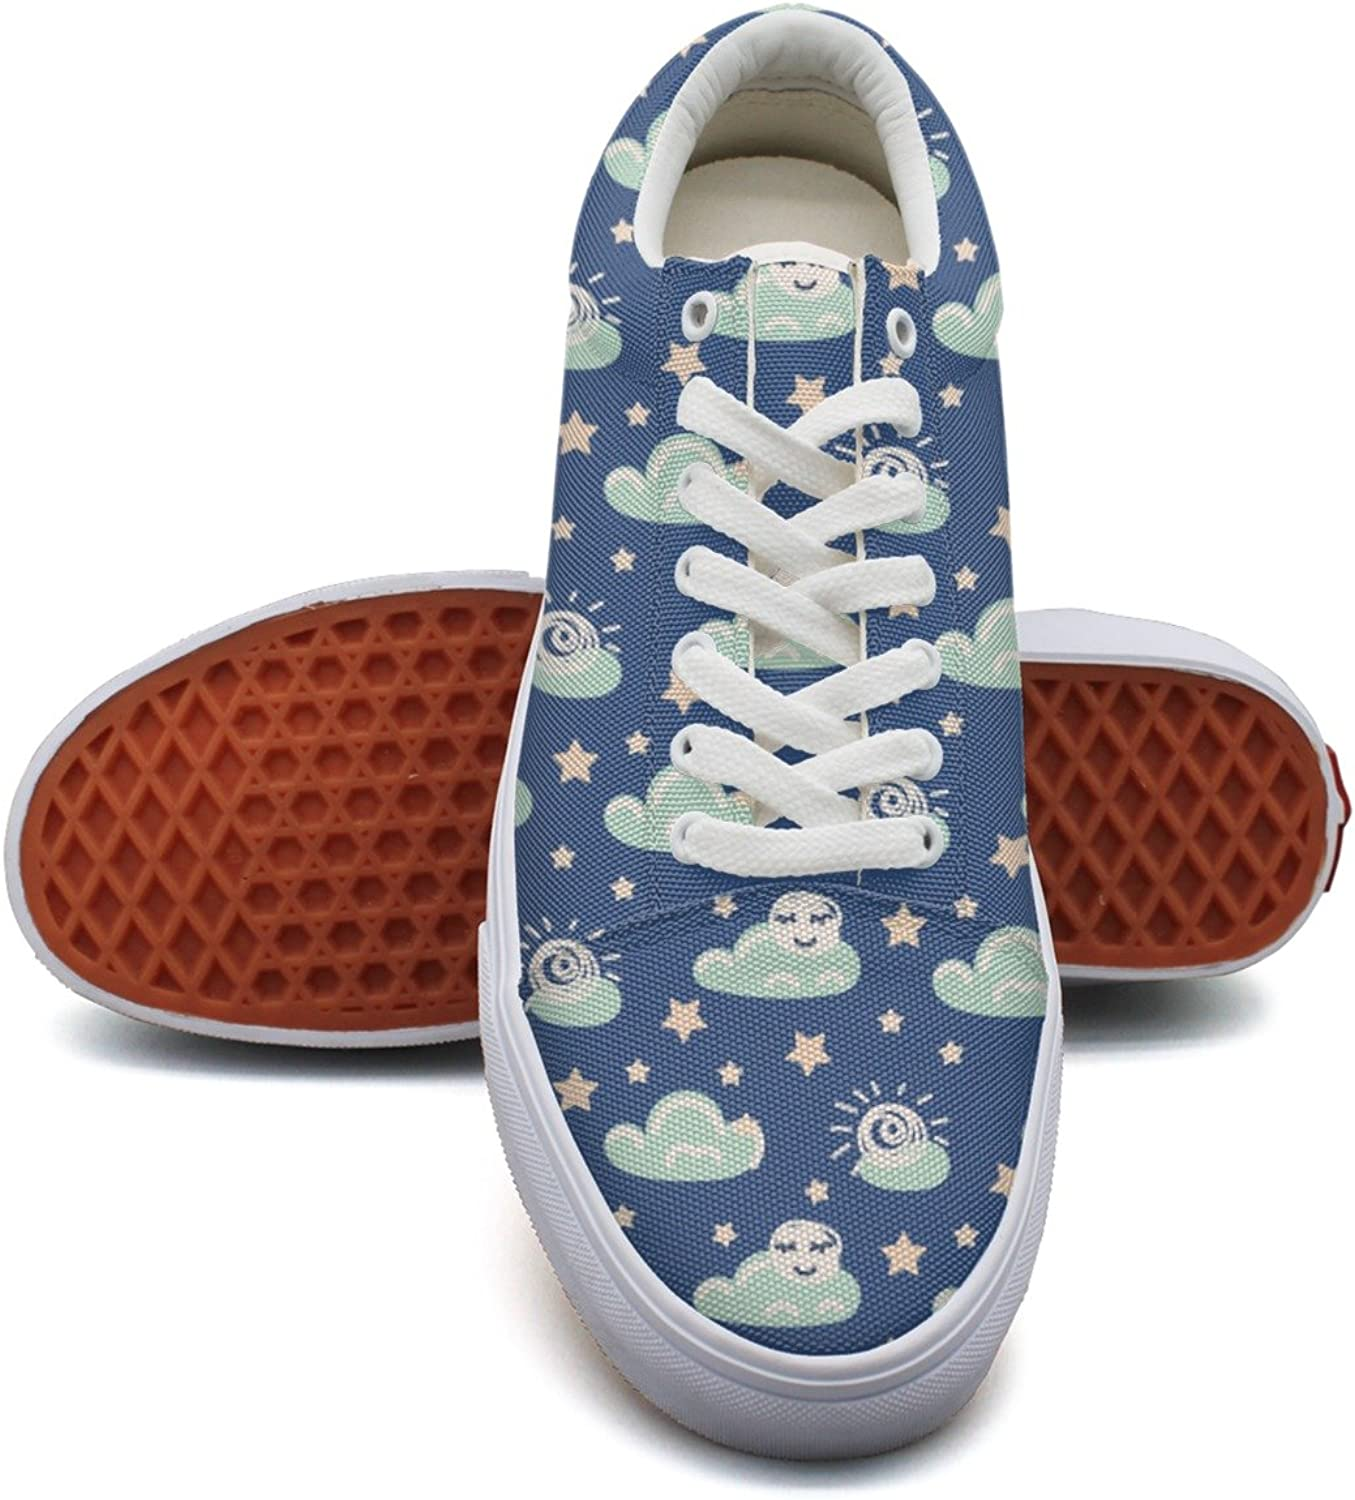 Feenfling is The Sun A Star Womens Casual Canvas shoes Low Top Vintage Sneakers for Women's